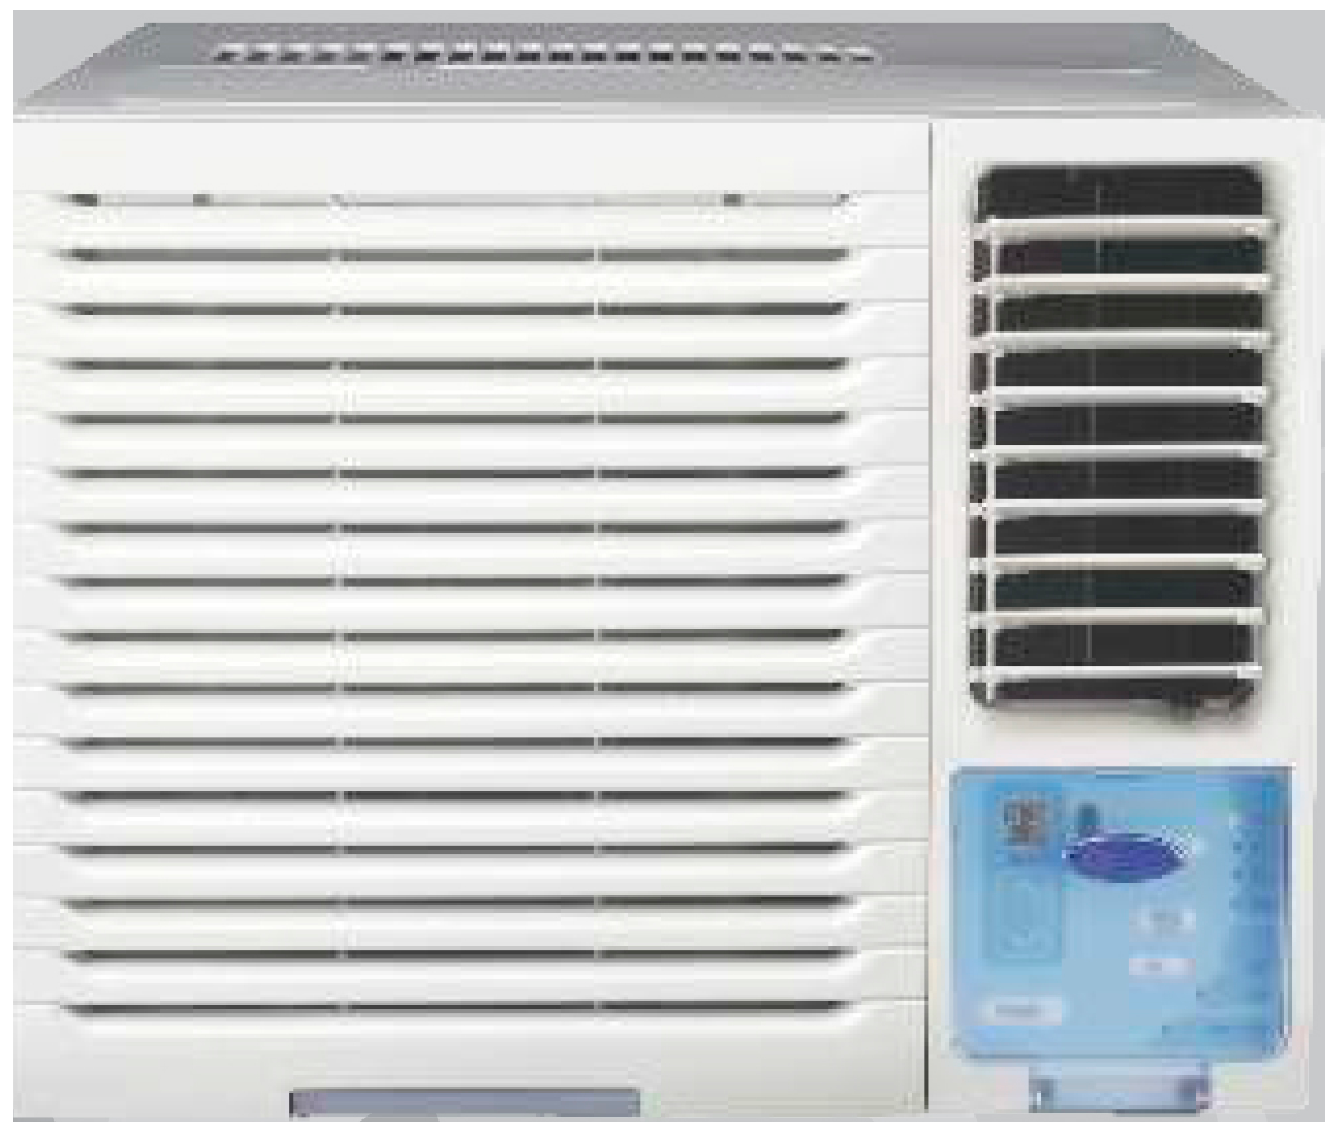 #3A6D91 Carrier Air Conditioners Cool Solutions Highly Rated 11329 Carrier Air Conditioner Units wallpapers with 1340x1144 px on helpvideos.info - Air Conditioners, Air Coolers and more